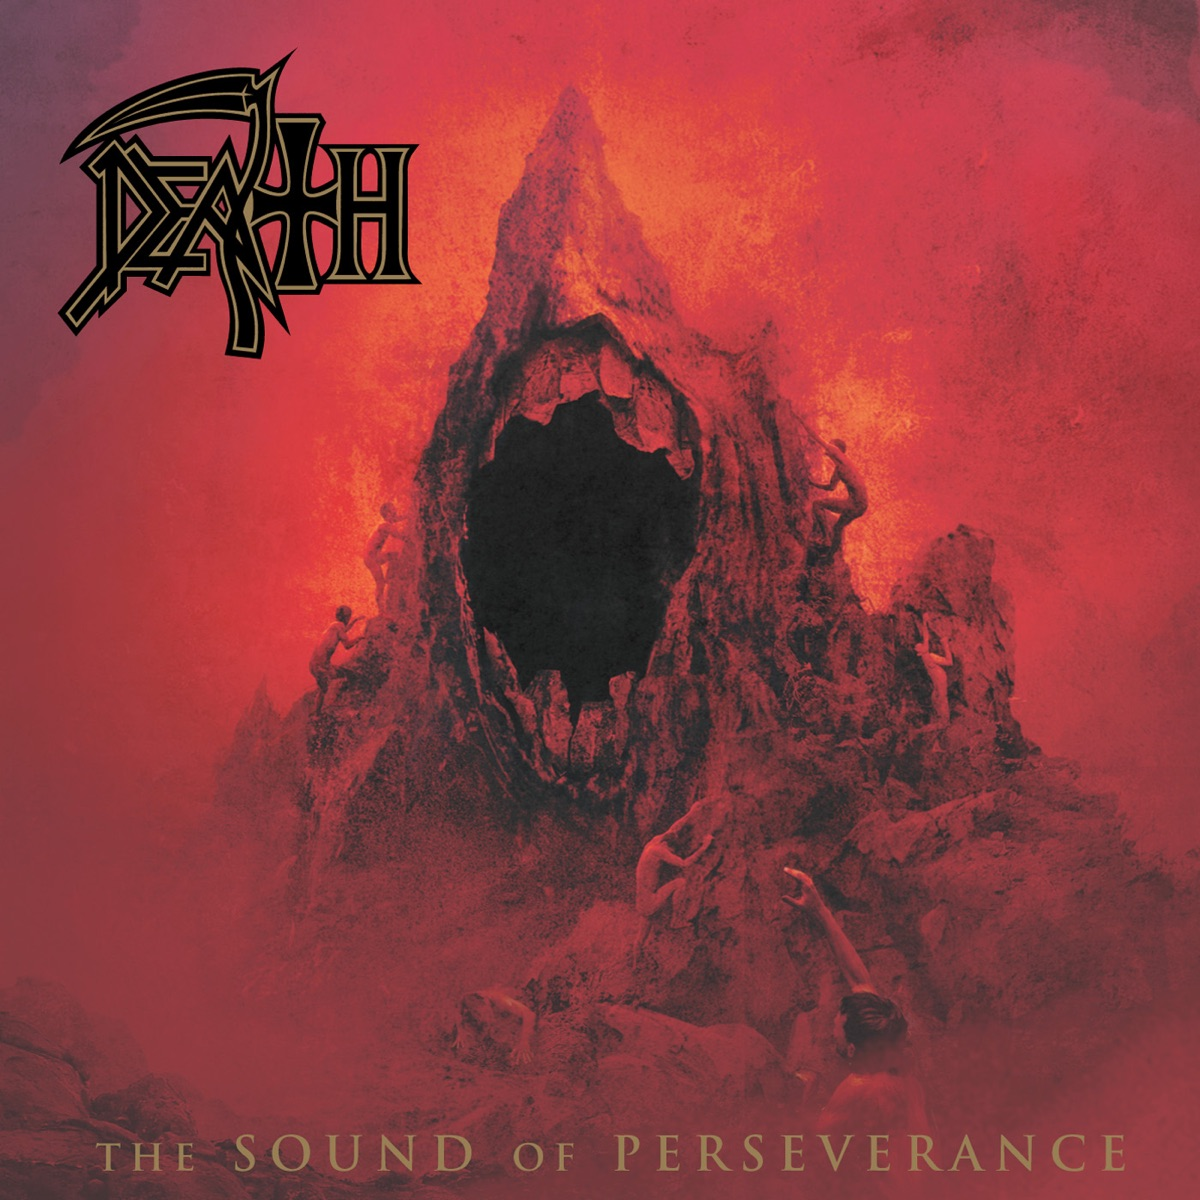 The Sound Of Perseverance Album Cover By Death